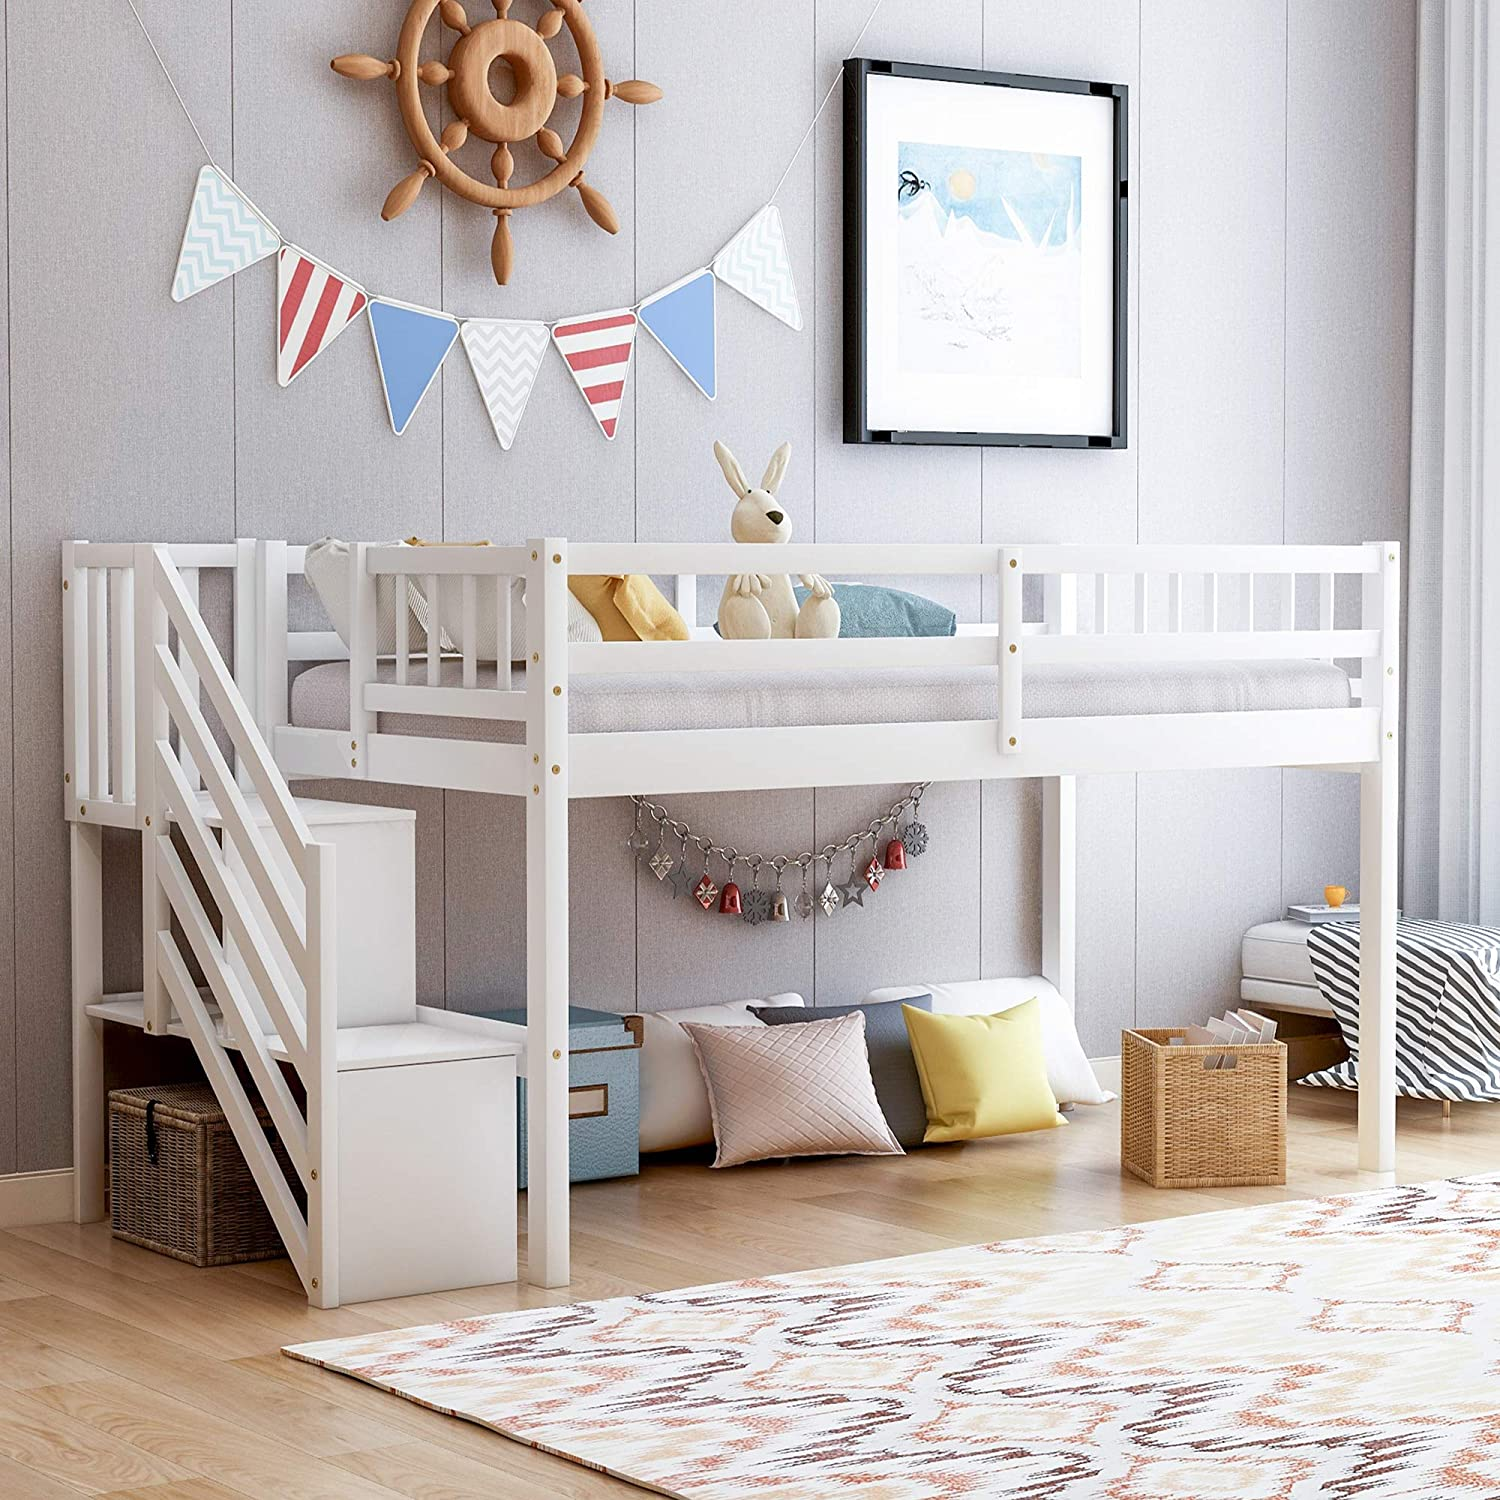 White Solid Wood Loft Bed Twin Size with Handrails Wide Step Ladder Storage